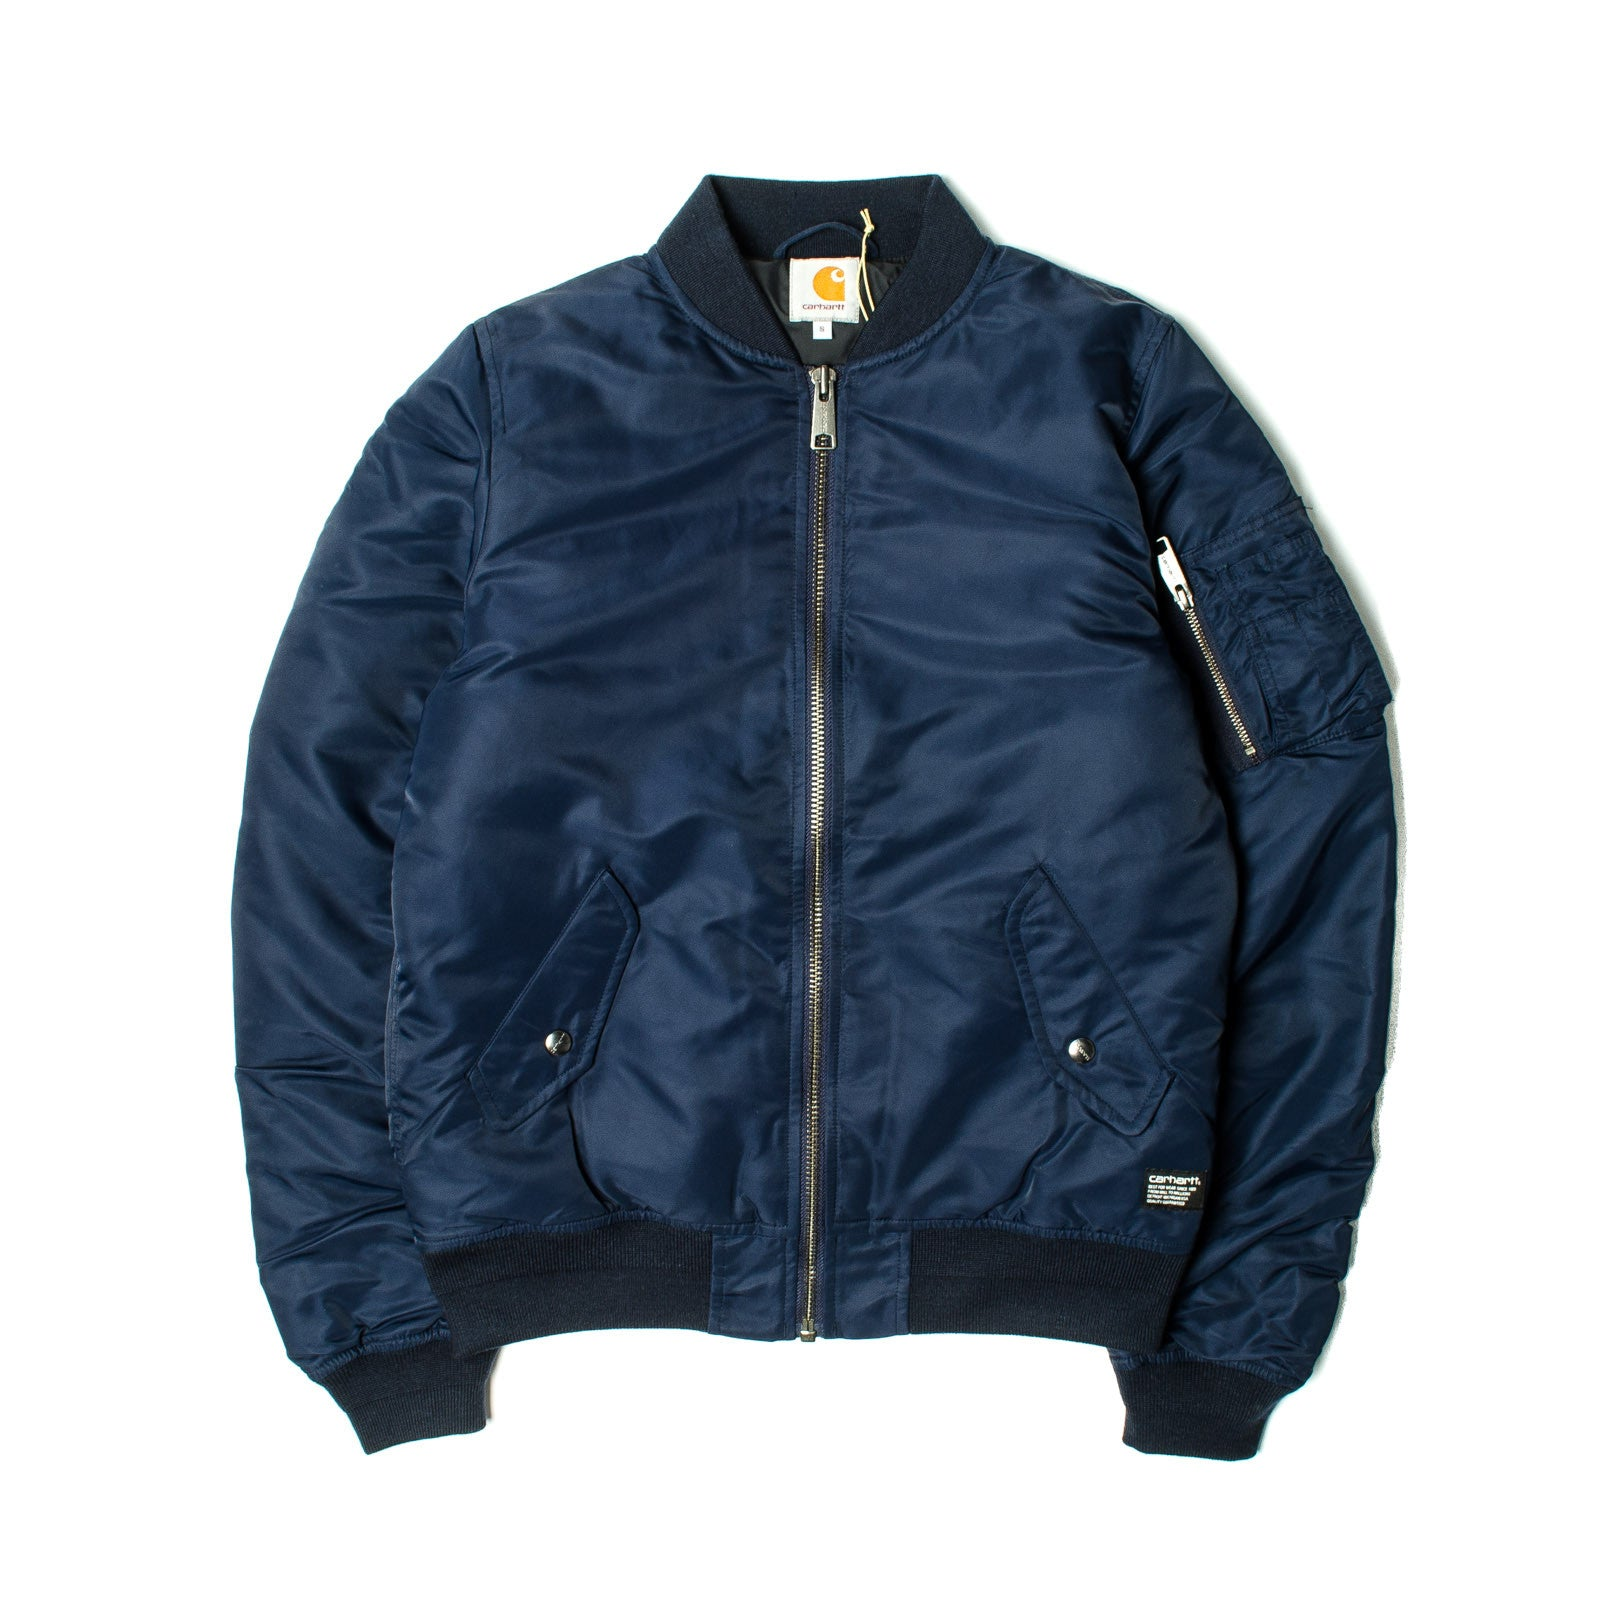 Ashton Bomber Jacket Navy